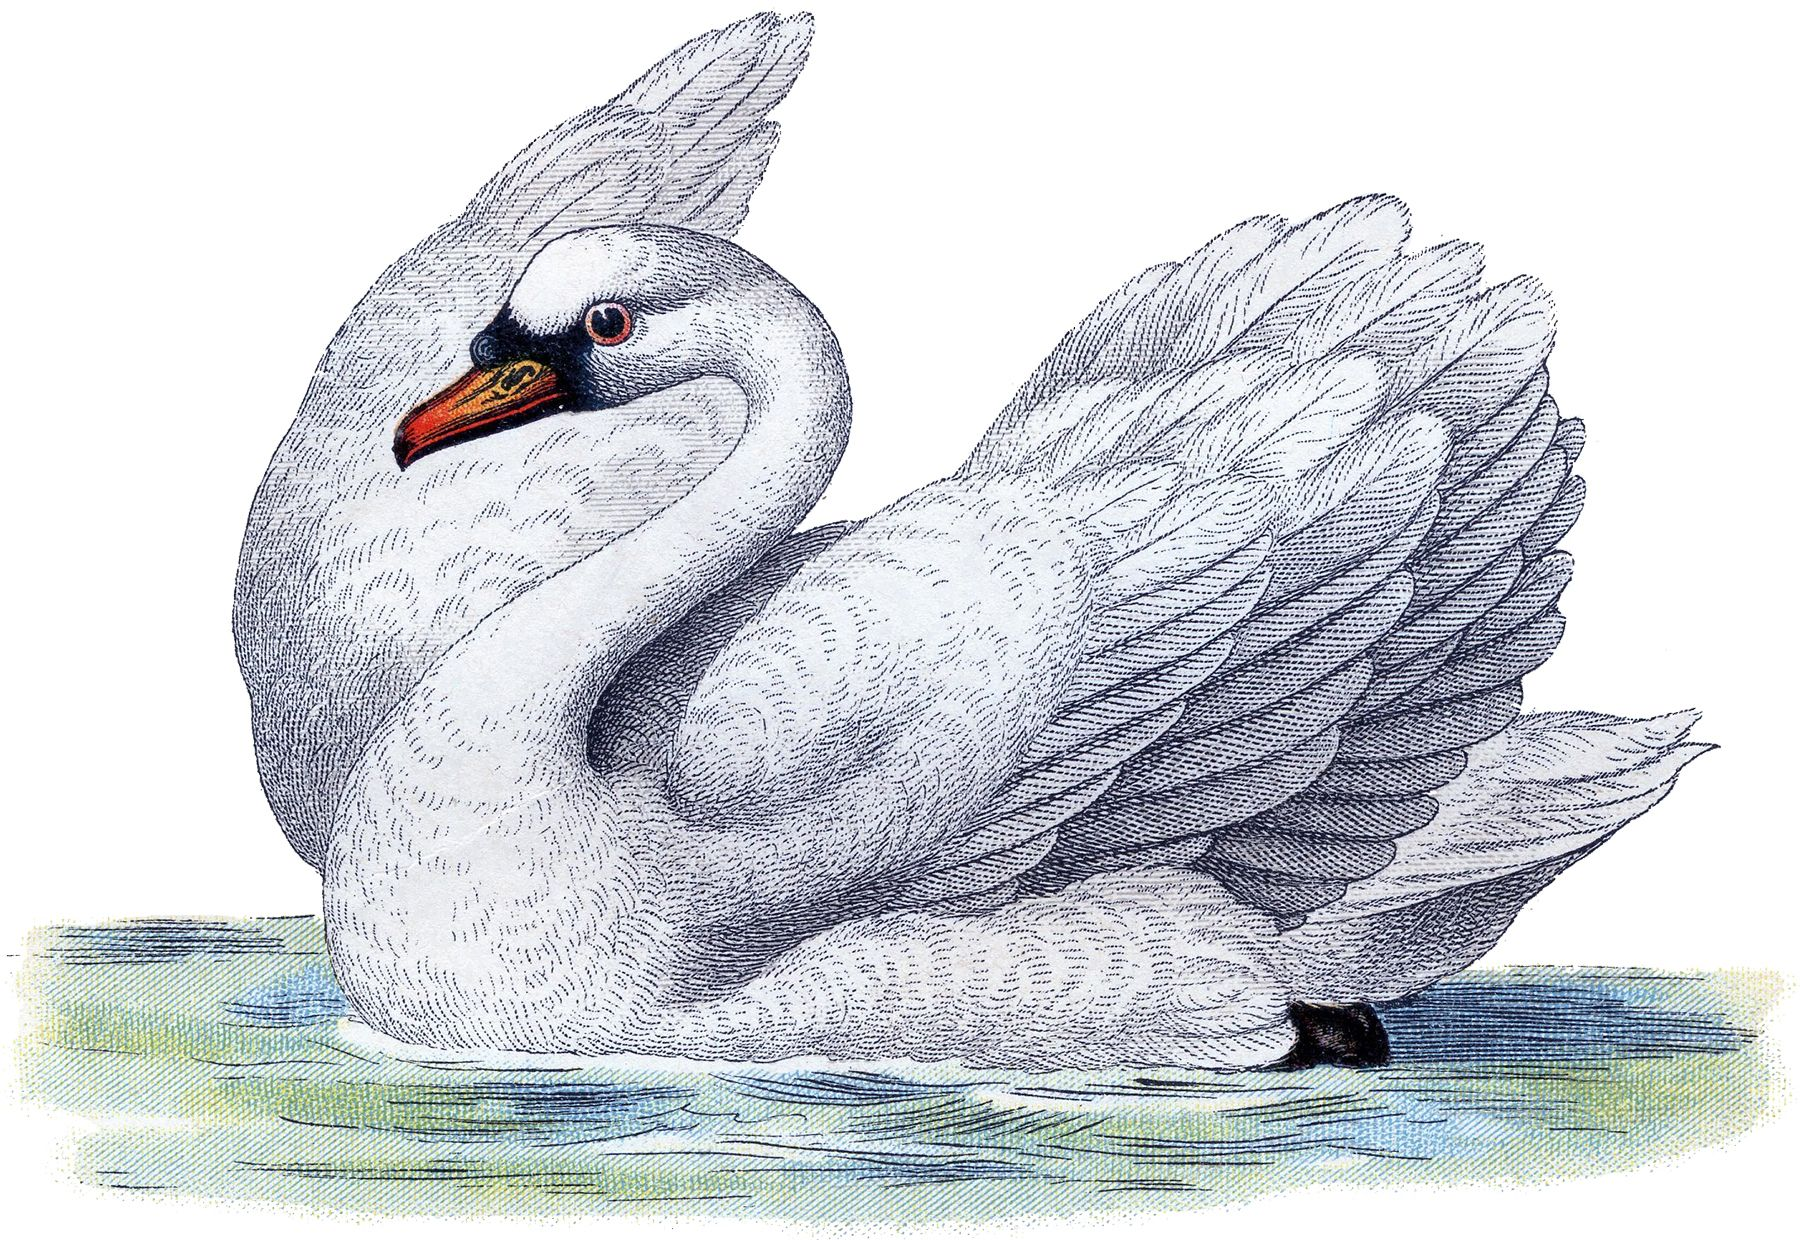 50 Fantastic Animal Images! - The Graphics Fairy - Shown is the most beautiful Vintage Picture of a White Swan swimming on top of the water.